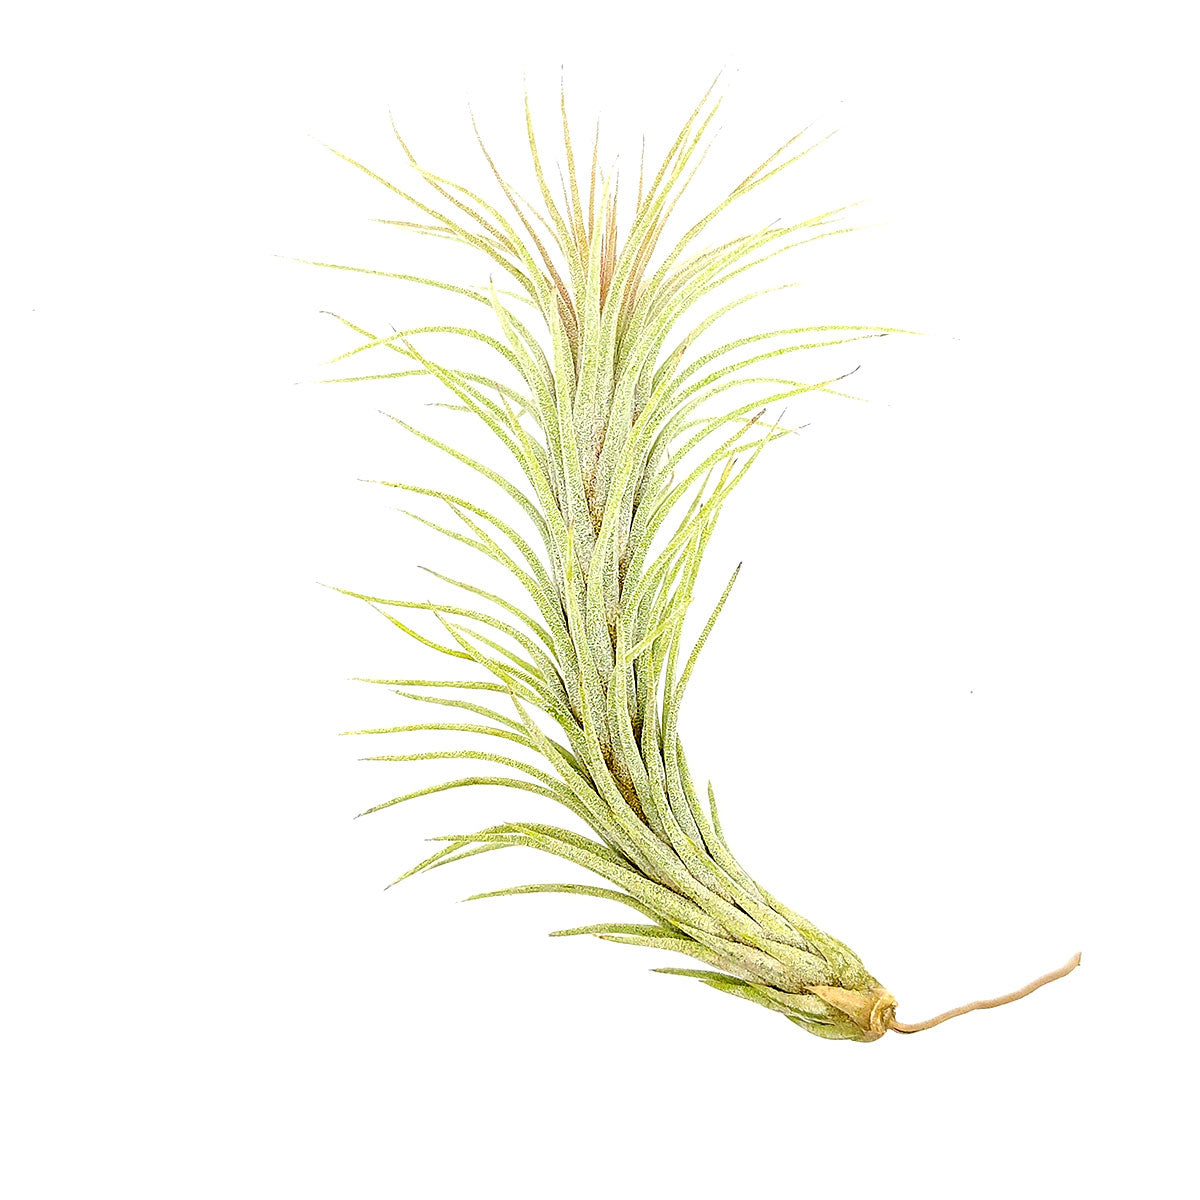 Tillandsia Funckiana type 2 air plant for sale, How to care for Tillandsia Funckiana type 2 air plant, air plant gift decor ideas, Growing Tillandsia Funckiana type 2 air plant, rare air plant